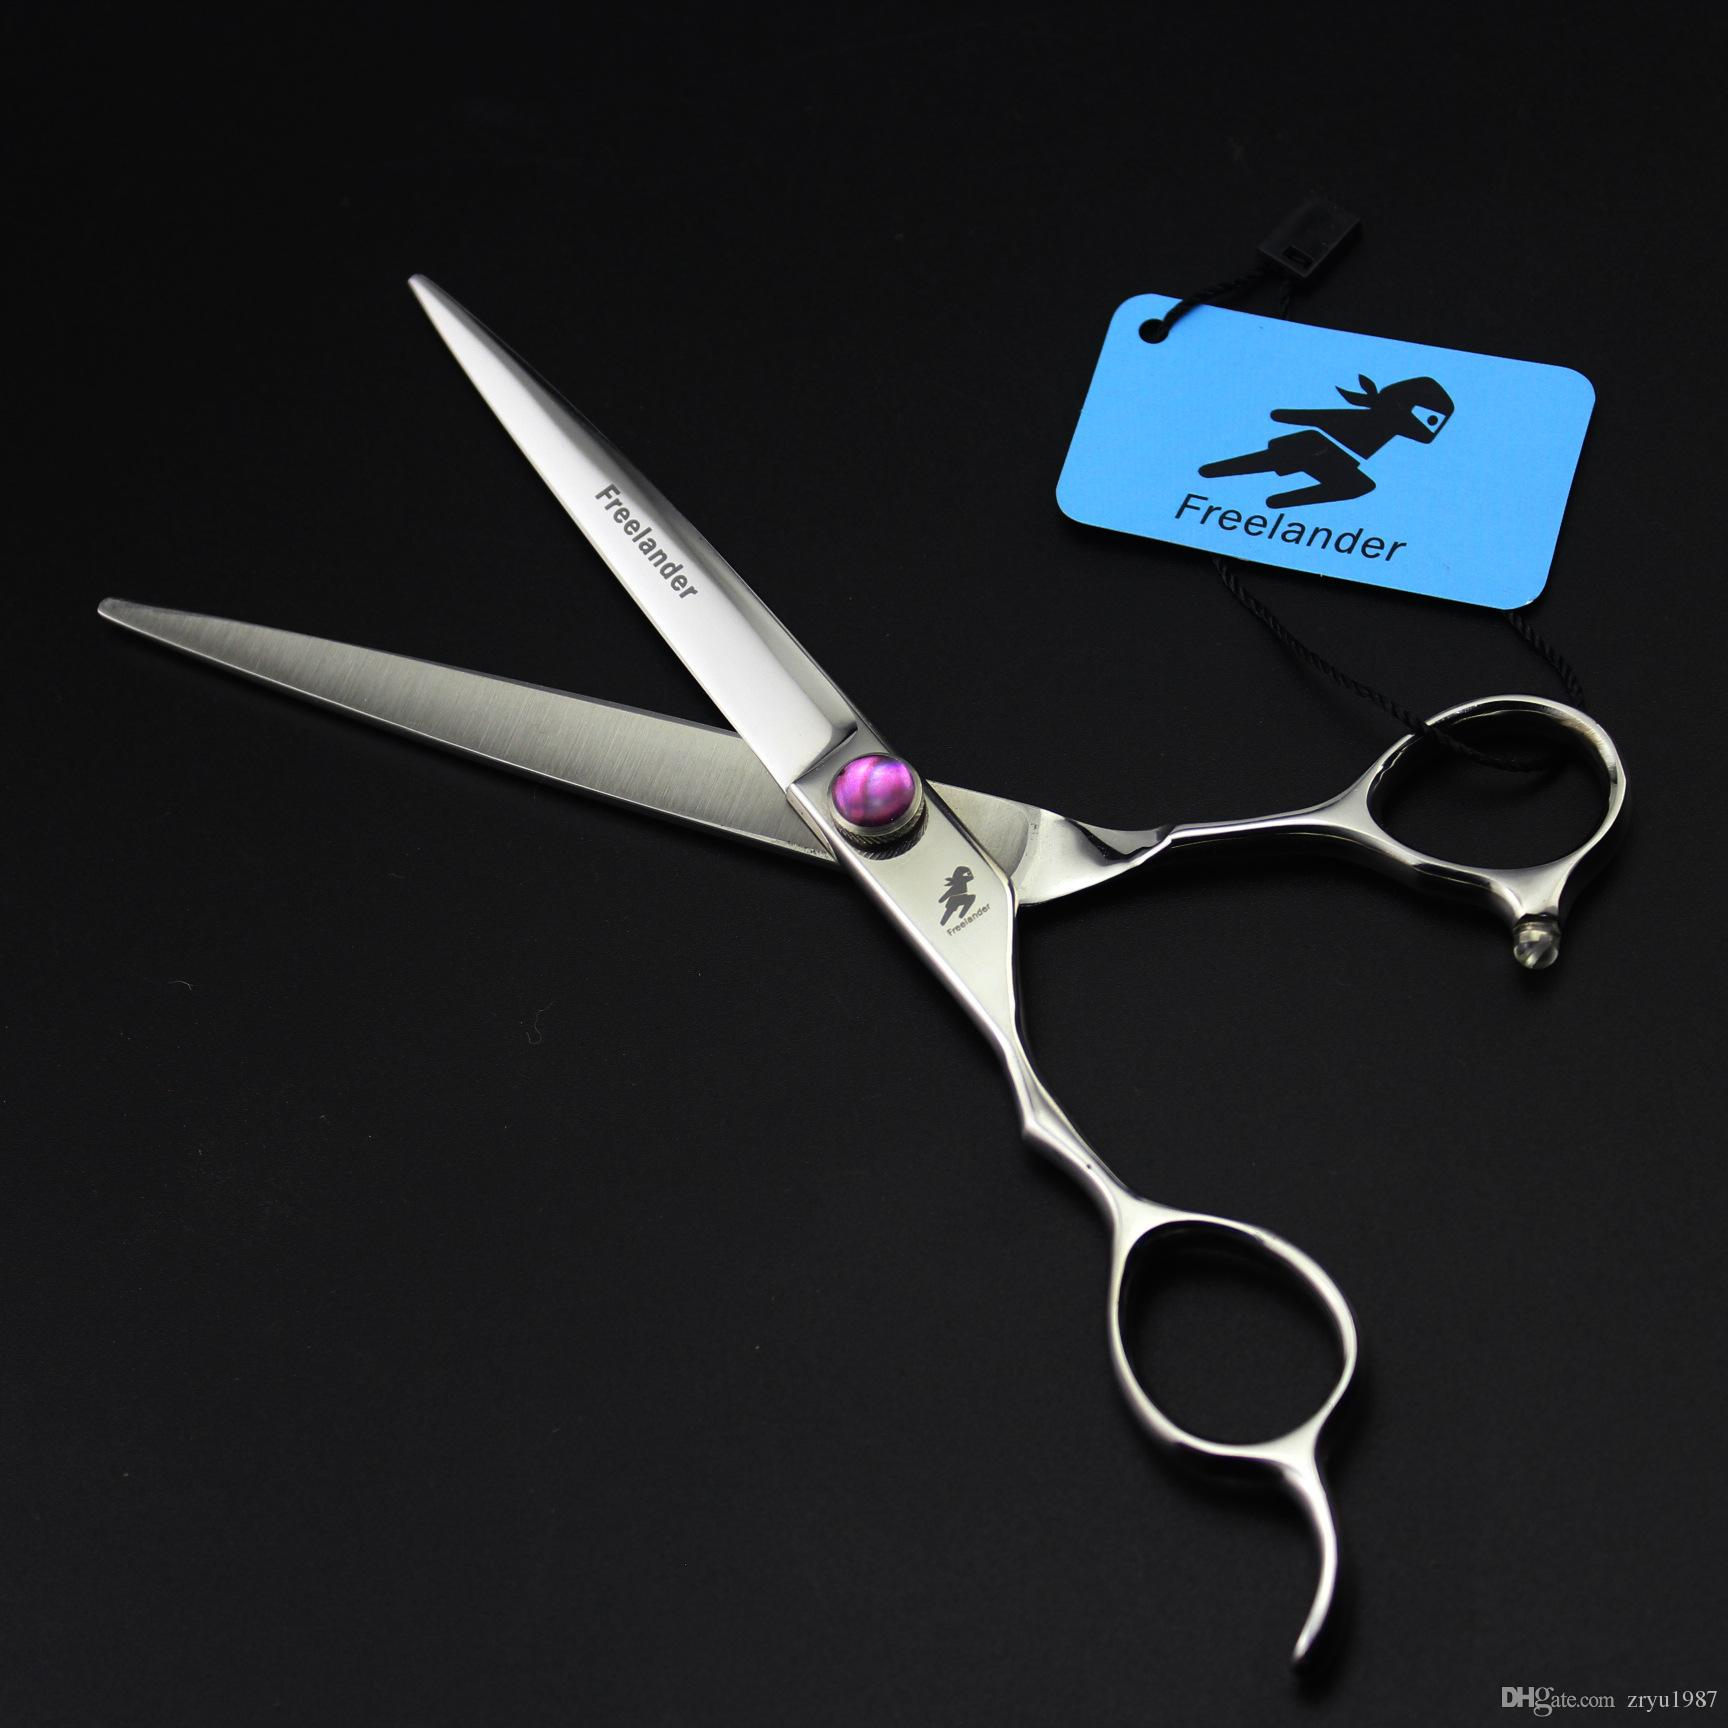 7 inch Japan 440C Left hand Hair Cutting Scissors Hair Shears Barber Scissors Hairdressing Scissors with case